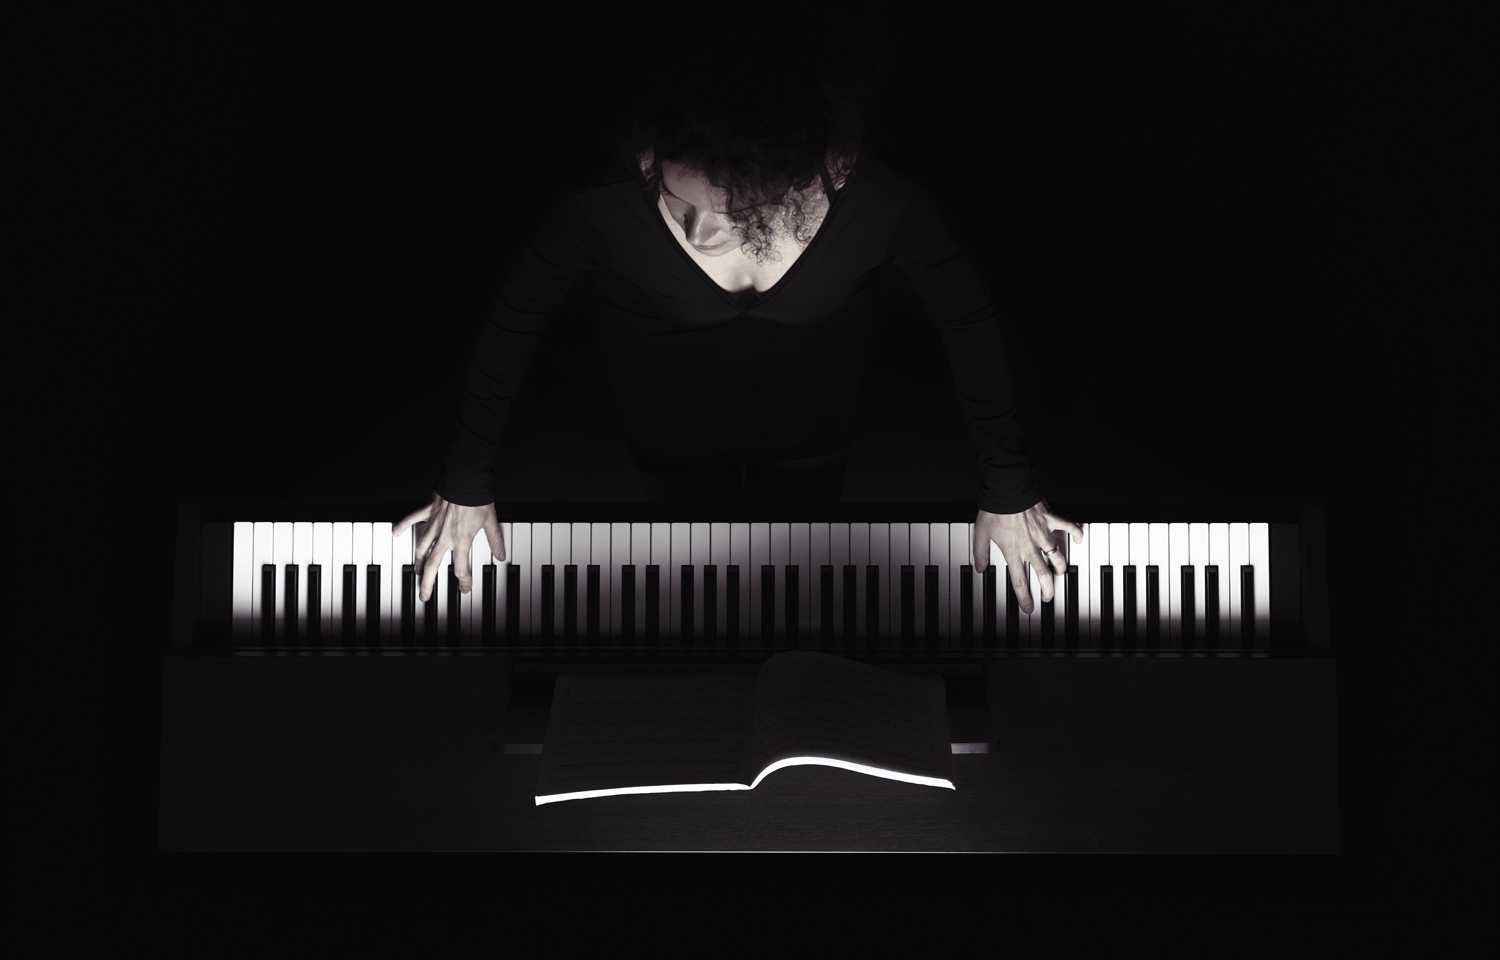 Woman playing the piano, white keys and hands on black background, overhead view in dramatic light — iblalx04436653.jpg